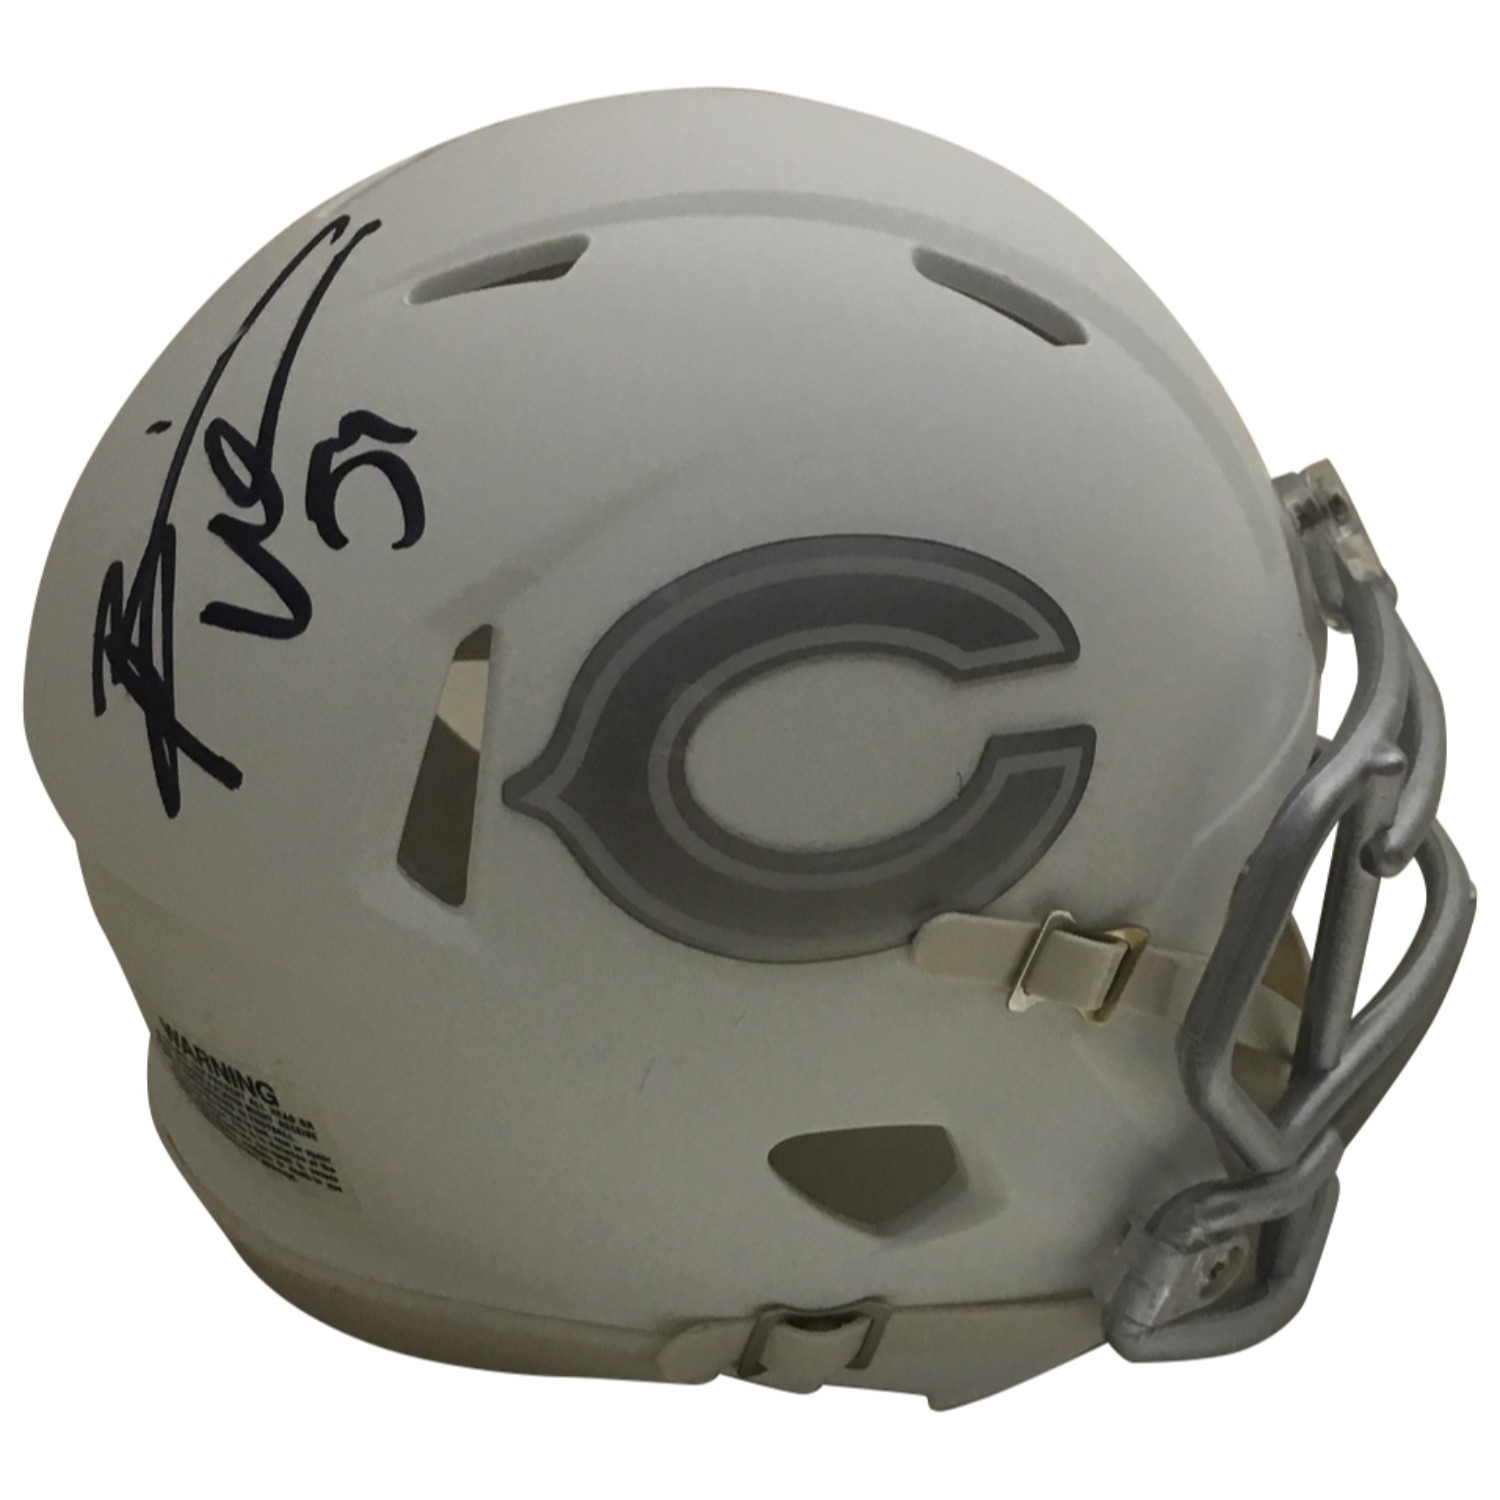 "Brian Urlacher Autographed Chicago Bears Signed ICE Football Mini Helmet JSA COA Bears Hall of Fame linebacker Brian Urlacher has autographed this Chicago Bears ""ICE"" mini helmet.  A cool collectible as the ""ICE"" mini helmets were in very limited production.  Autograph is authenticated by James Spence Authentication (JSA), the world's leading authenticator of sports autographs. Comes with their unique sticker # fixed to the item and verified on their website. Also, comes with their certificate of authenticity with same matching sticker #. Receive EXACT item shown."